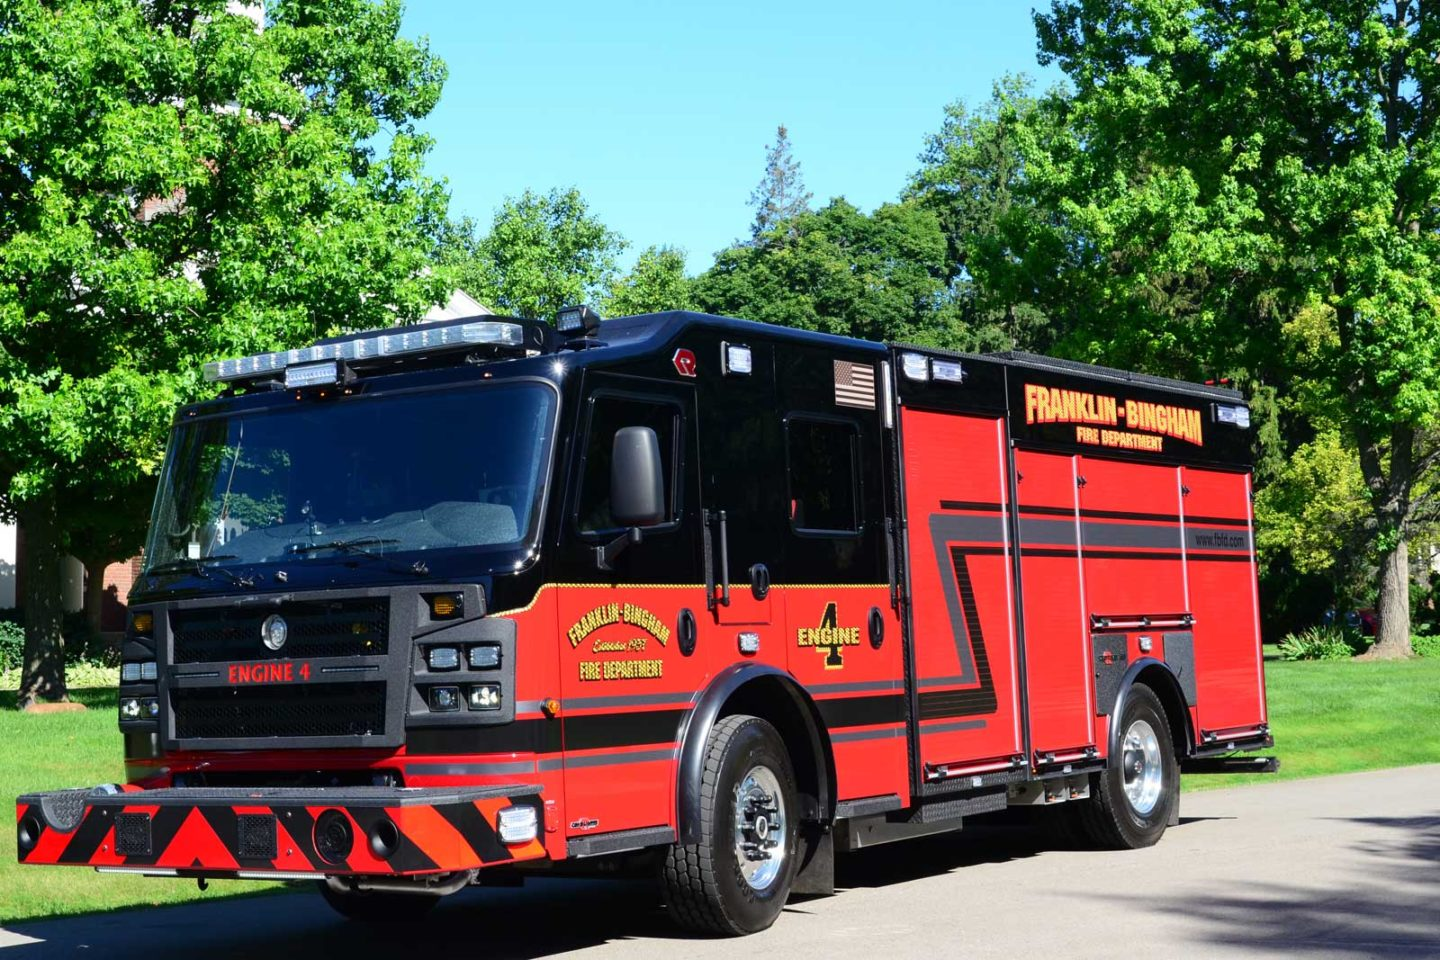 Rosenbauer built this length-restricted custom pumper for the Franklin-Bingham (MI) Fire Department on a Commander chassis and cab with seating for four firefighters.